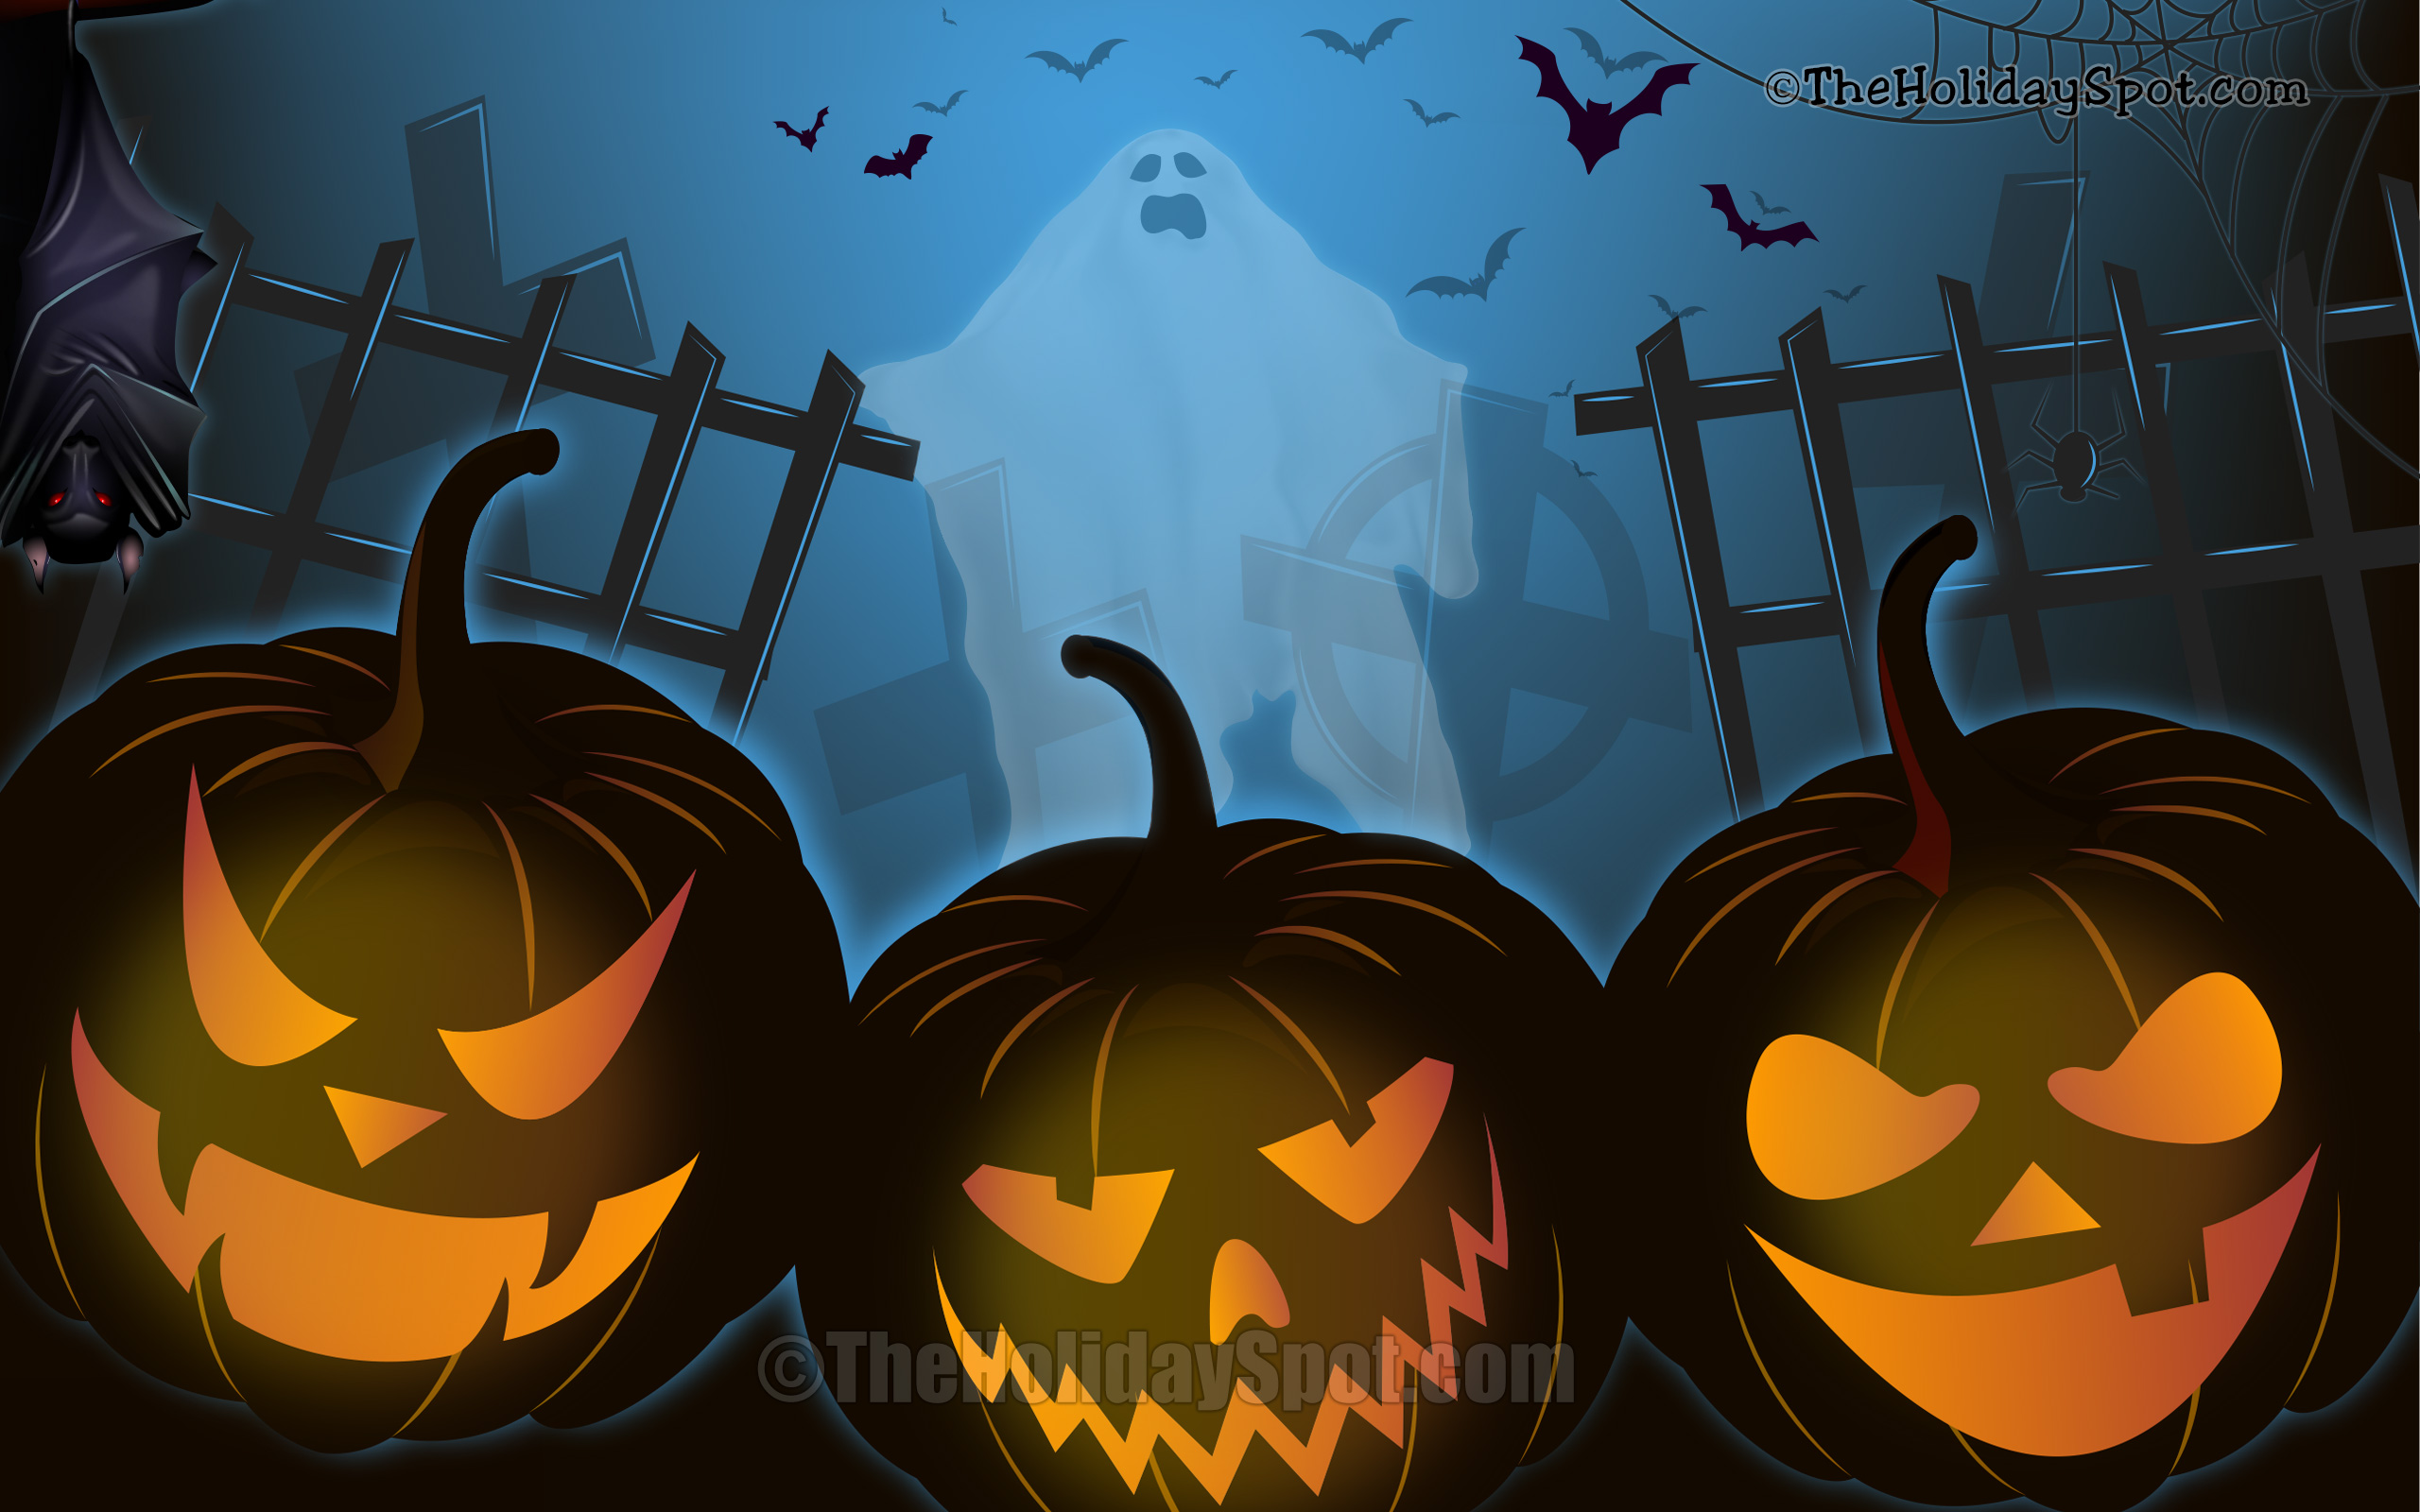 Wallpaper   Halloween Night With Bat, Pumpkins And Ghost